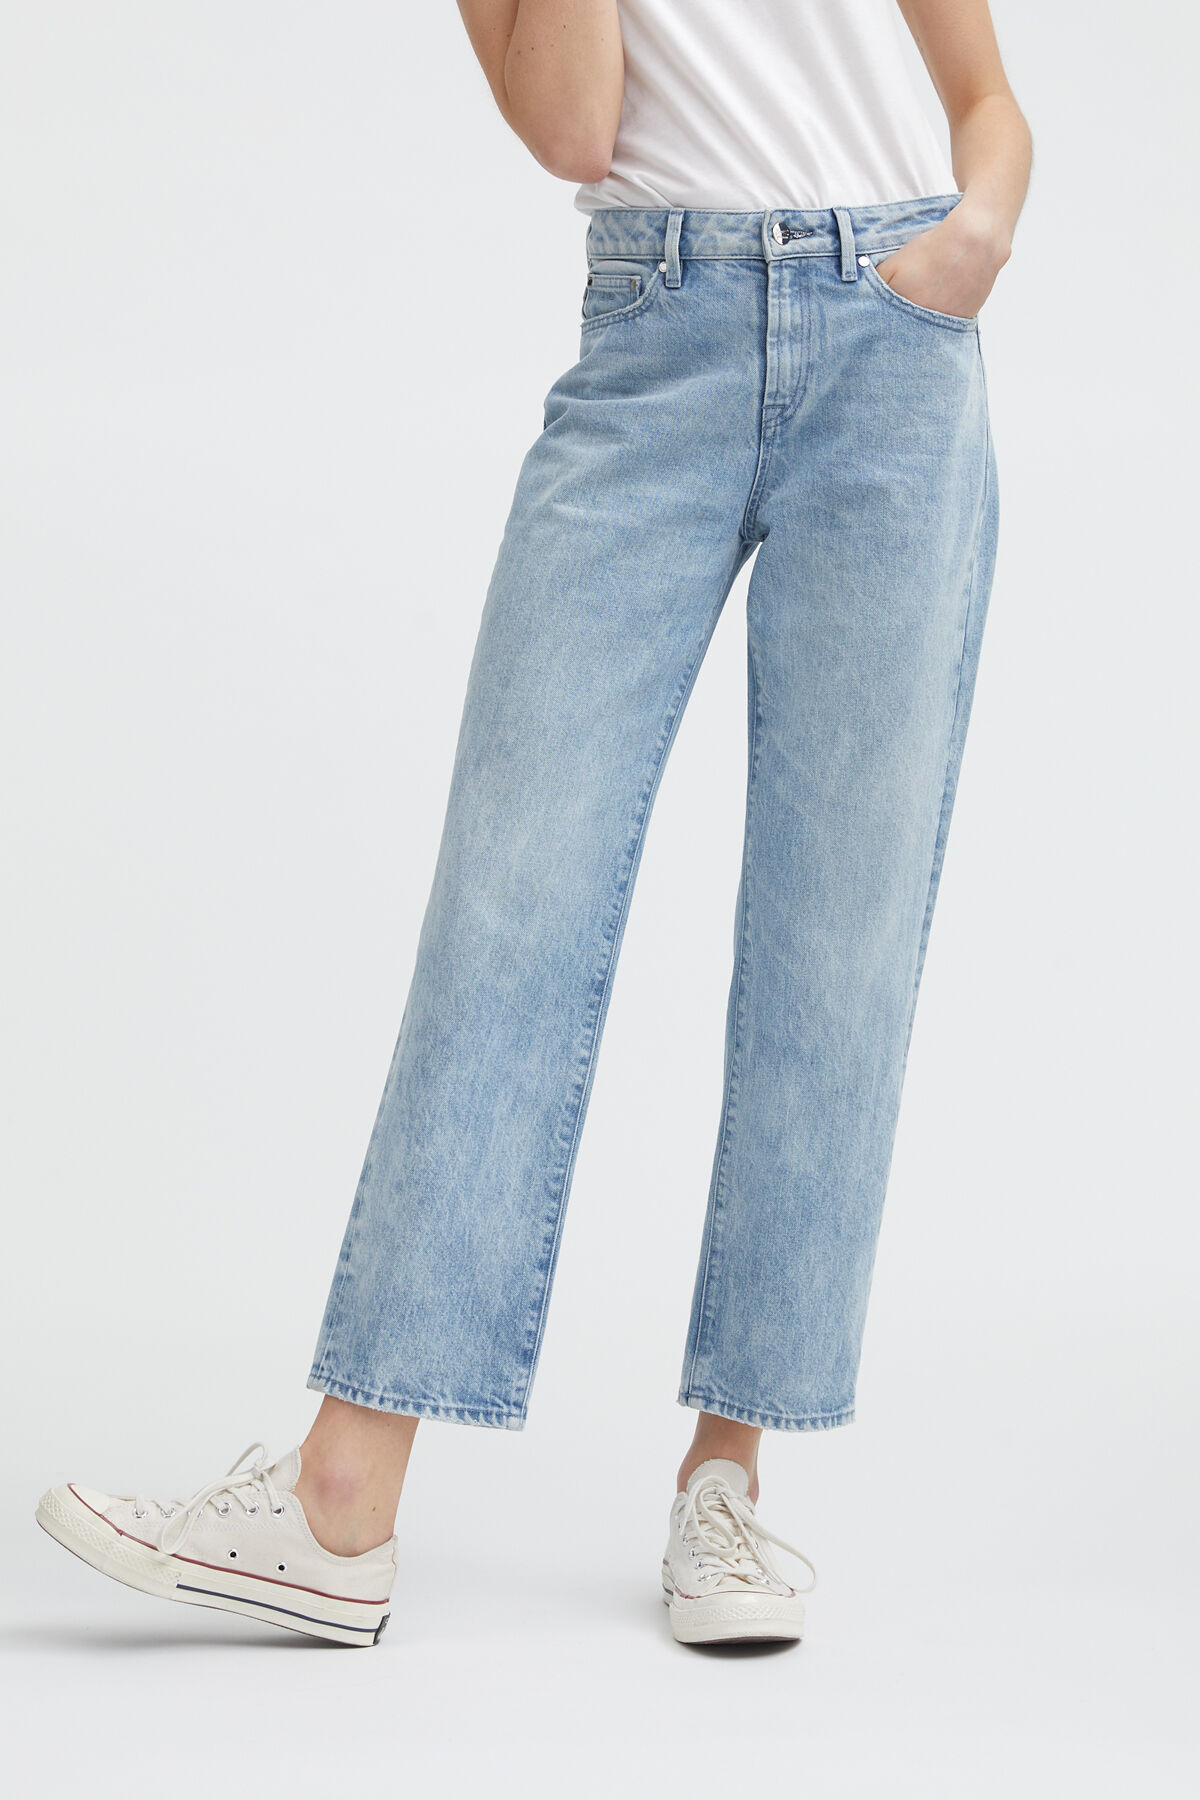 Bardot Straight Leg - Straight Fit Jeans - Front